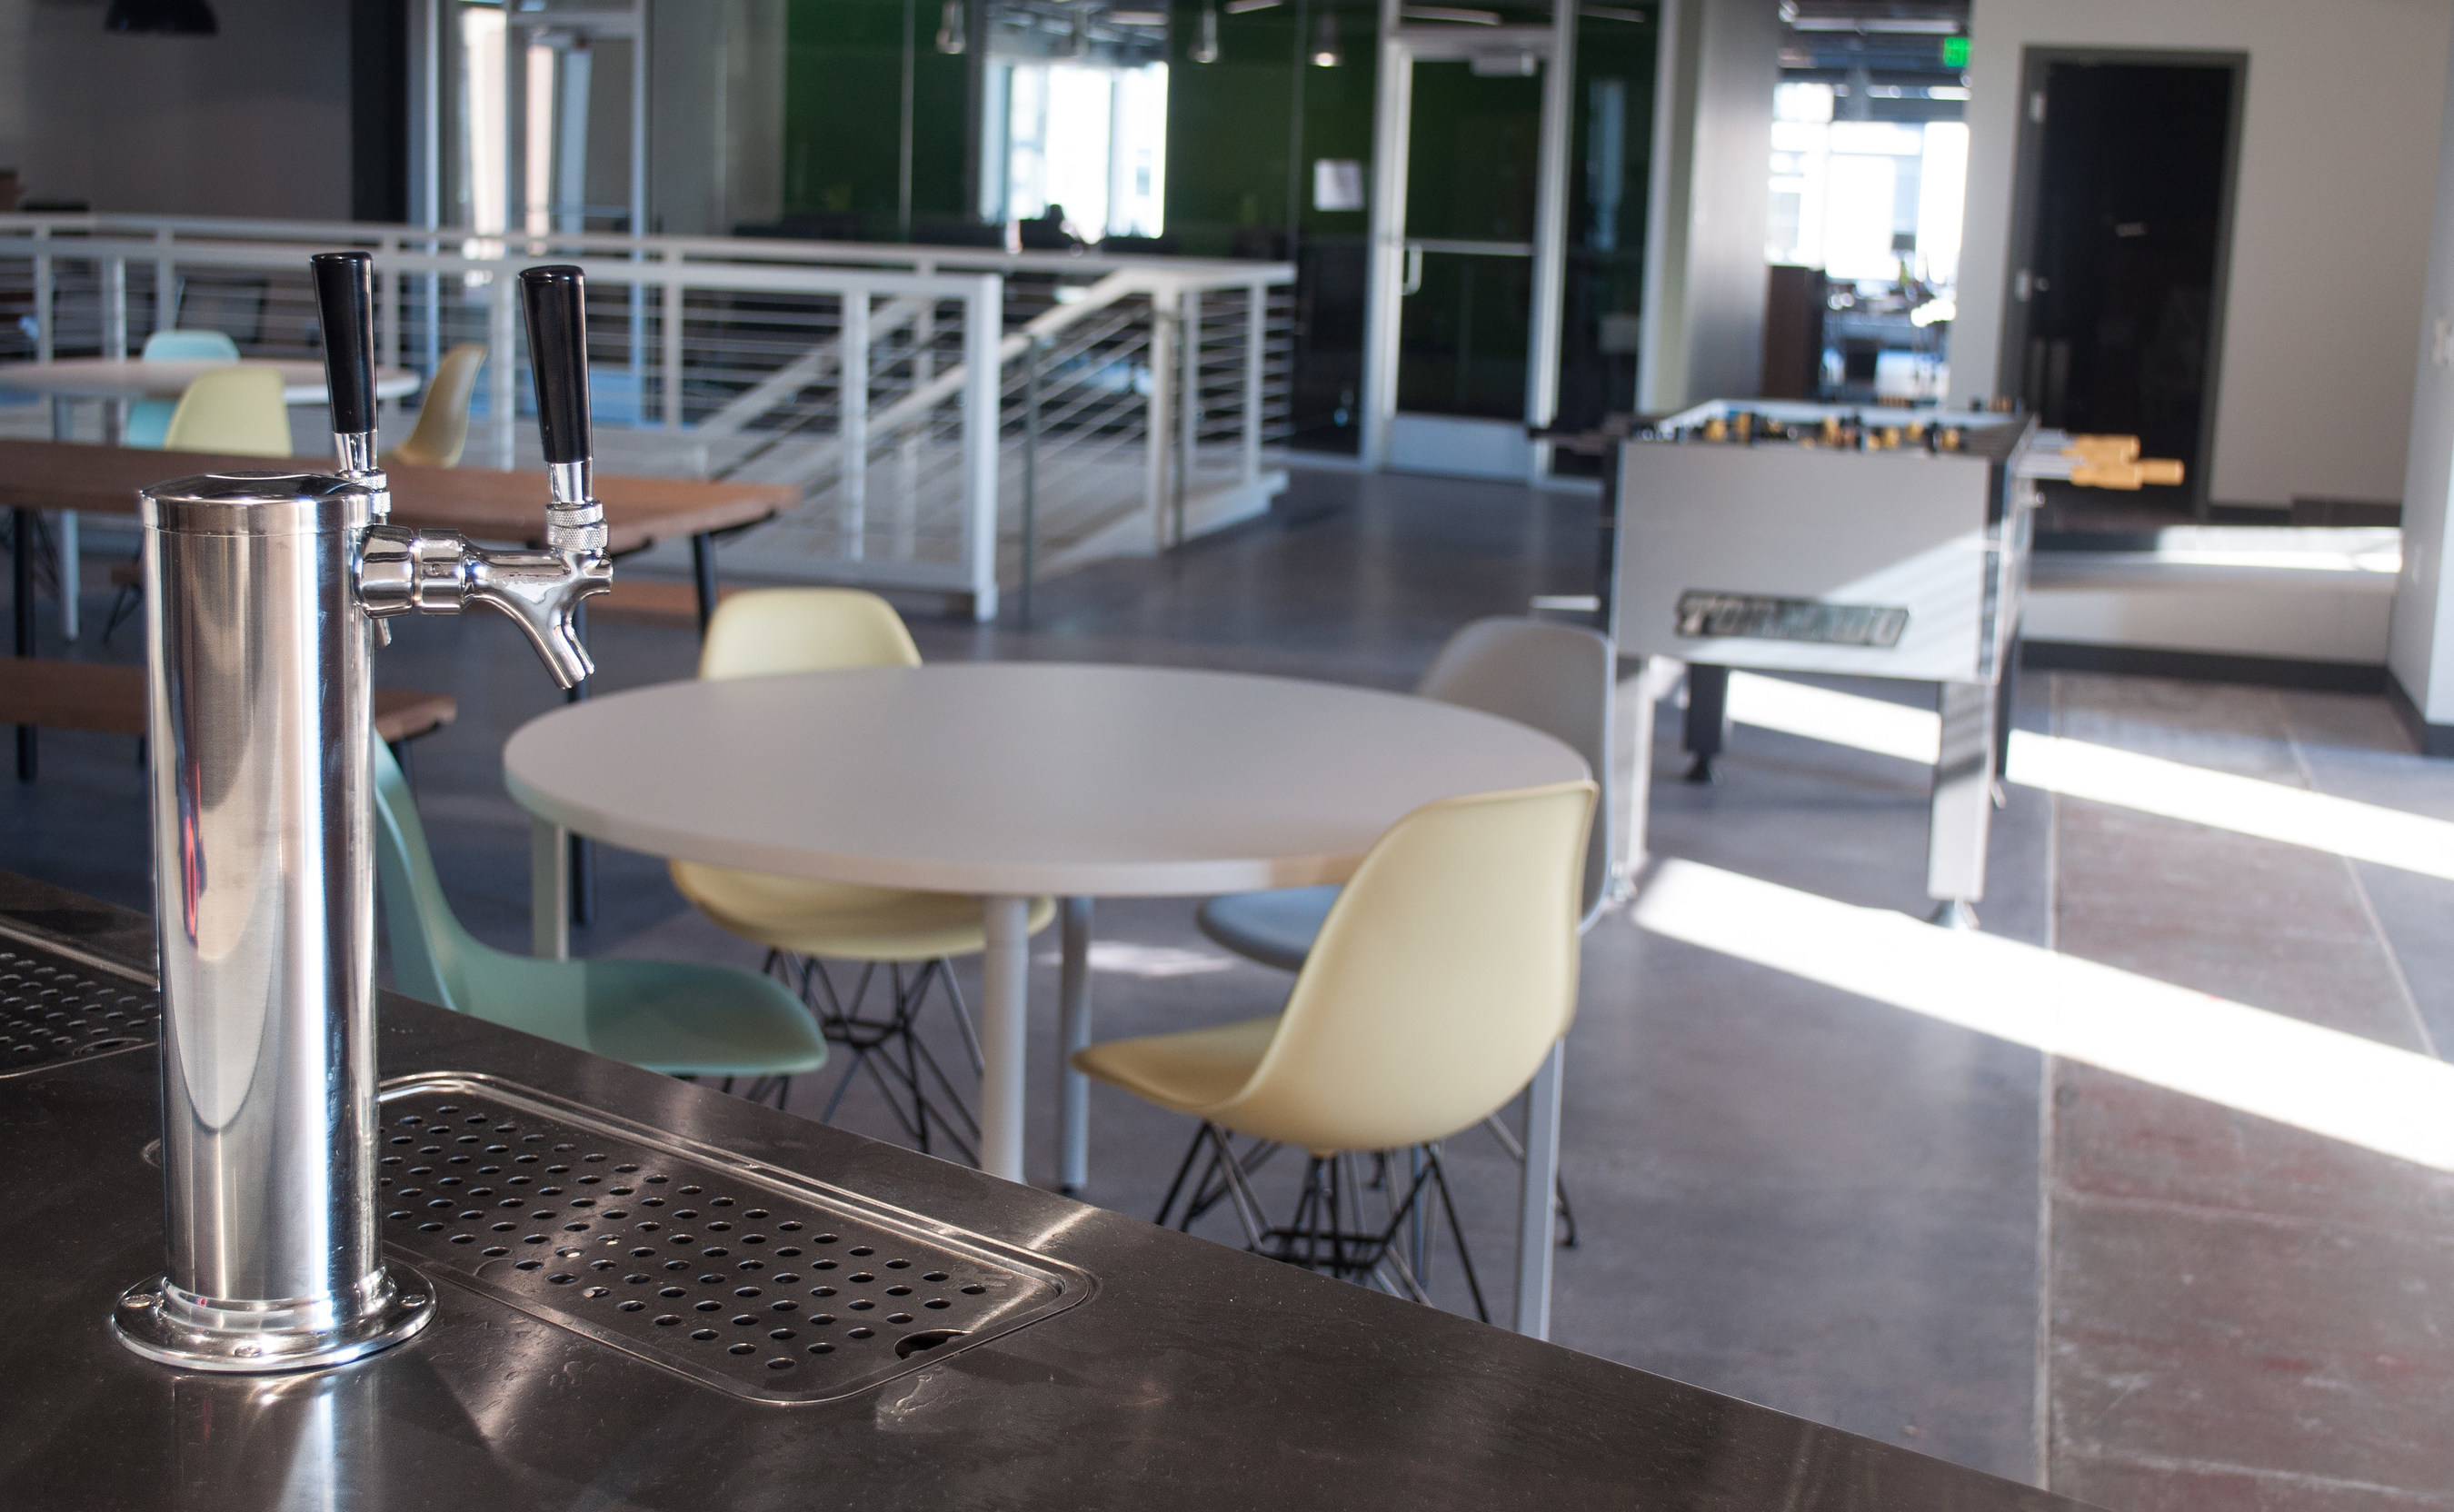 EatStreet's game room is complete with shuffleboard and ping-pong table, a kitchen, three beer taps and a 30-foot bar.